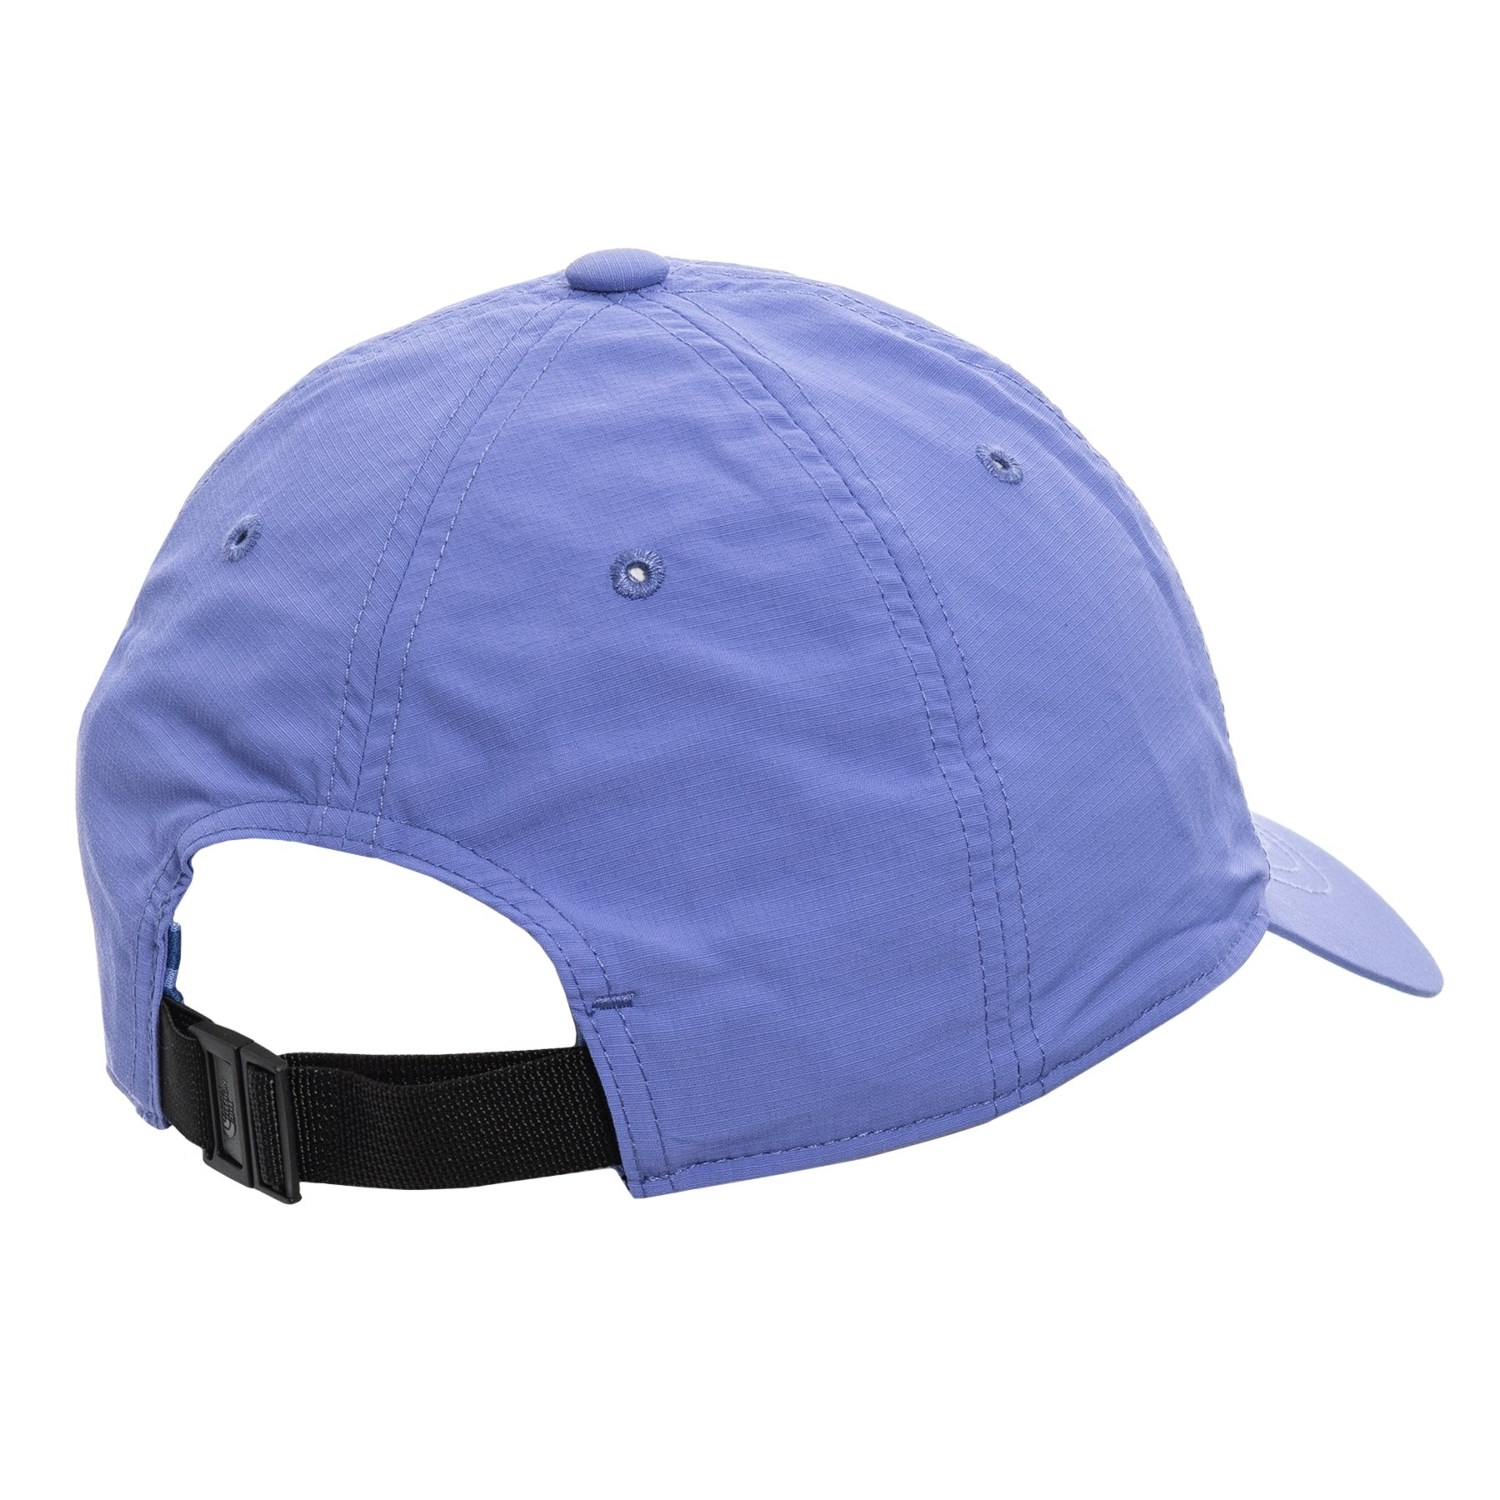 The North Face Horizon Baseball Cap - UPF 50 (For Women) a9367fad13f